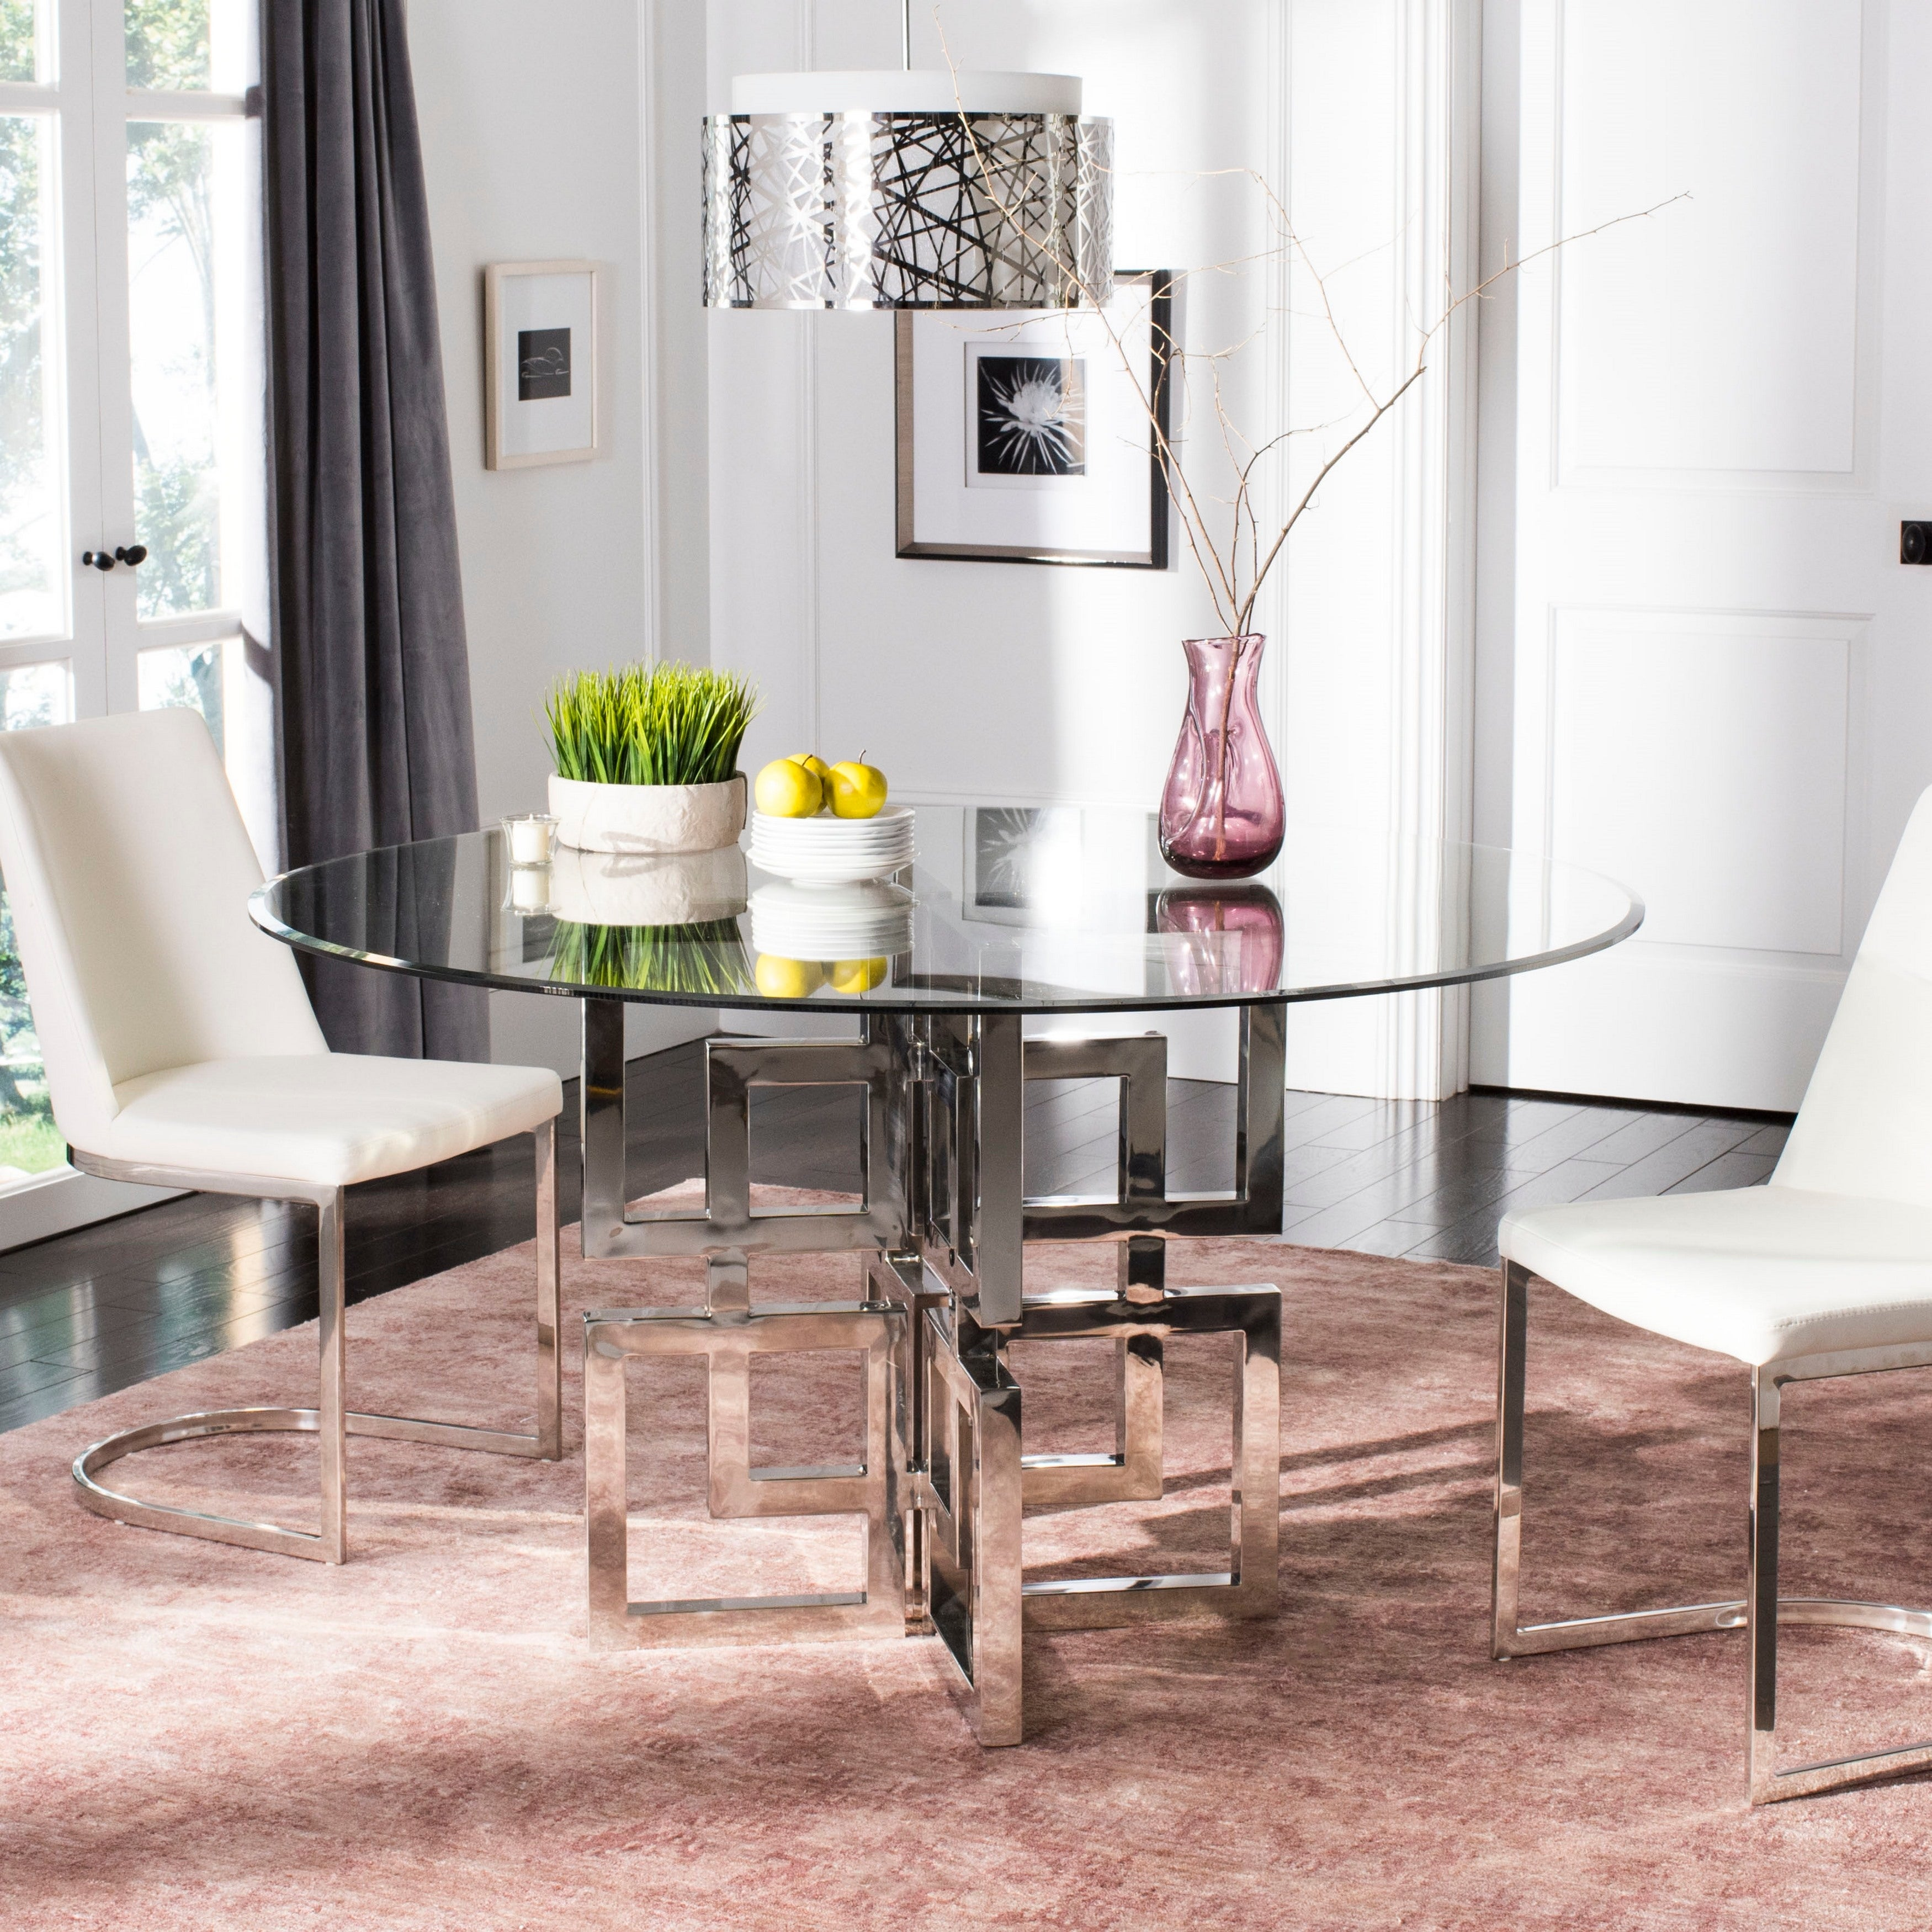 Safavieh Couture Harlan 42 Inch Glass Top Round Dining Table 42 W X 42 L X 40 H Overstock 21924039